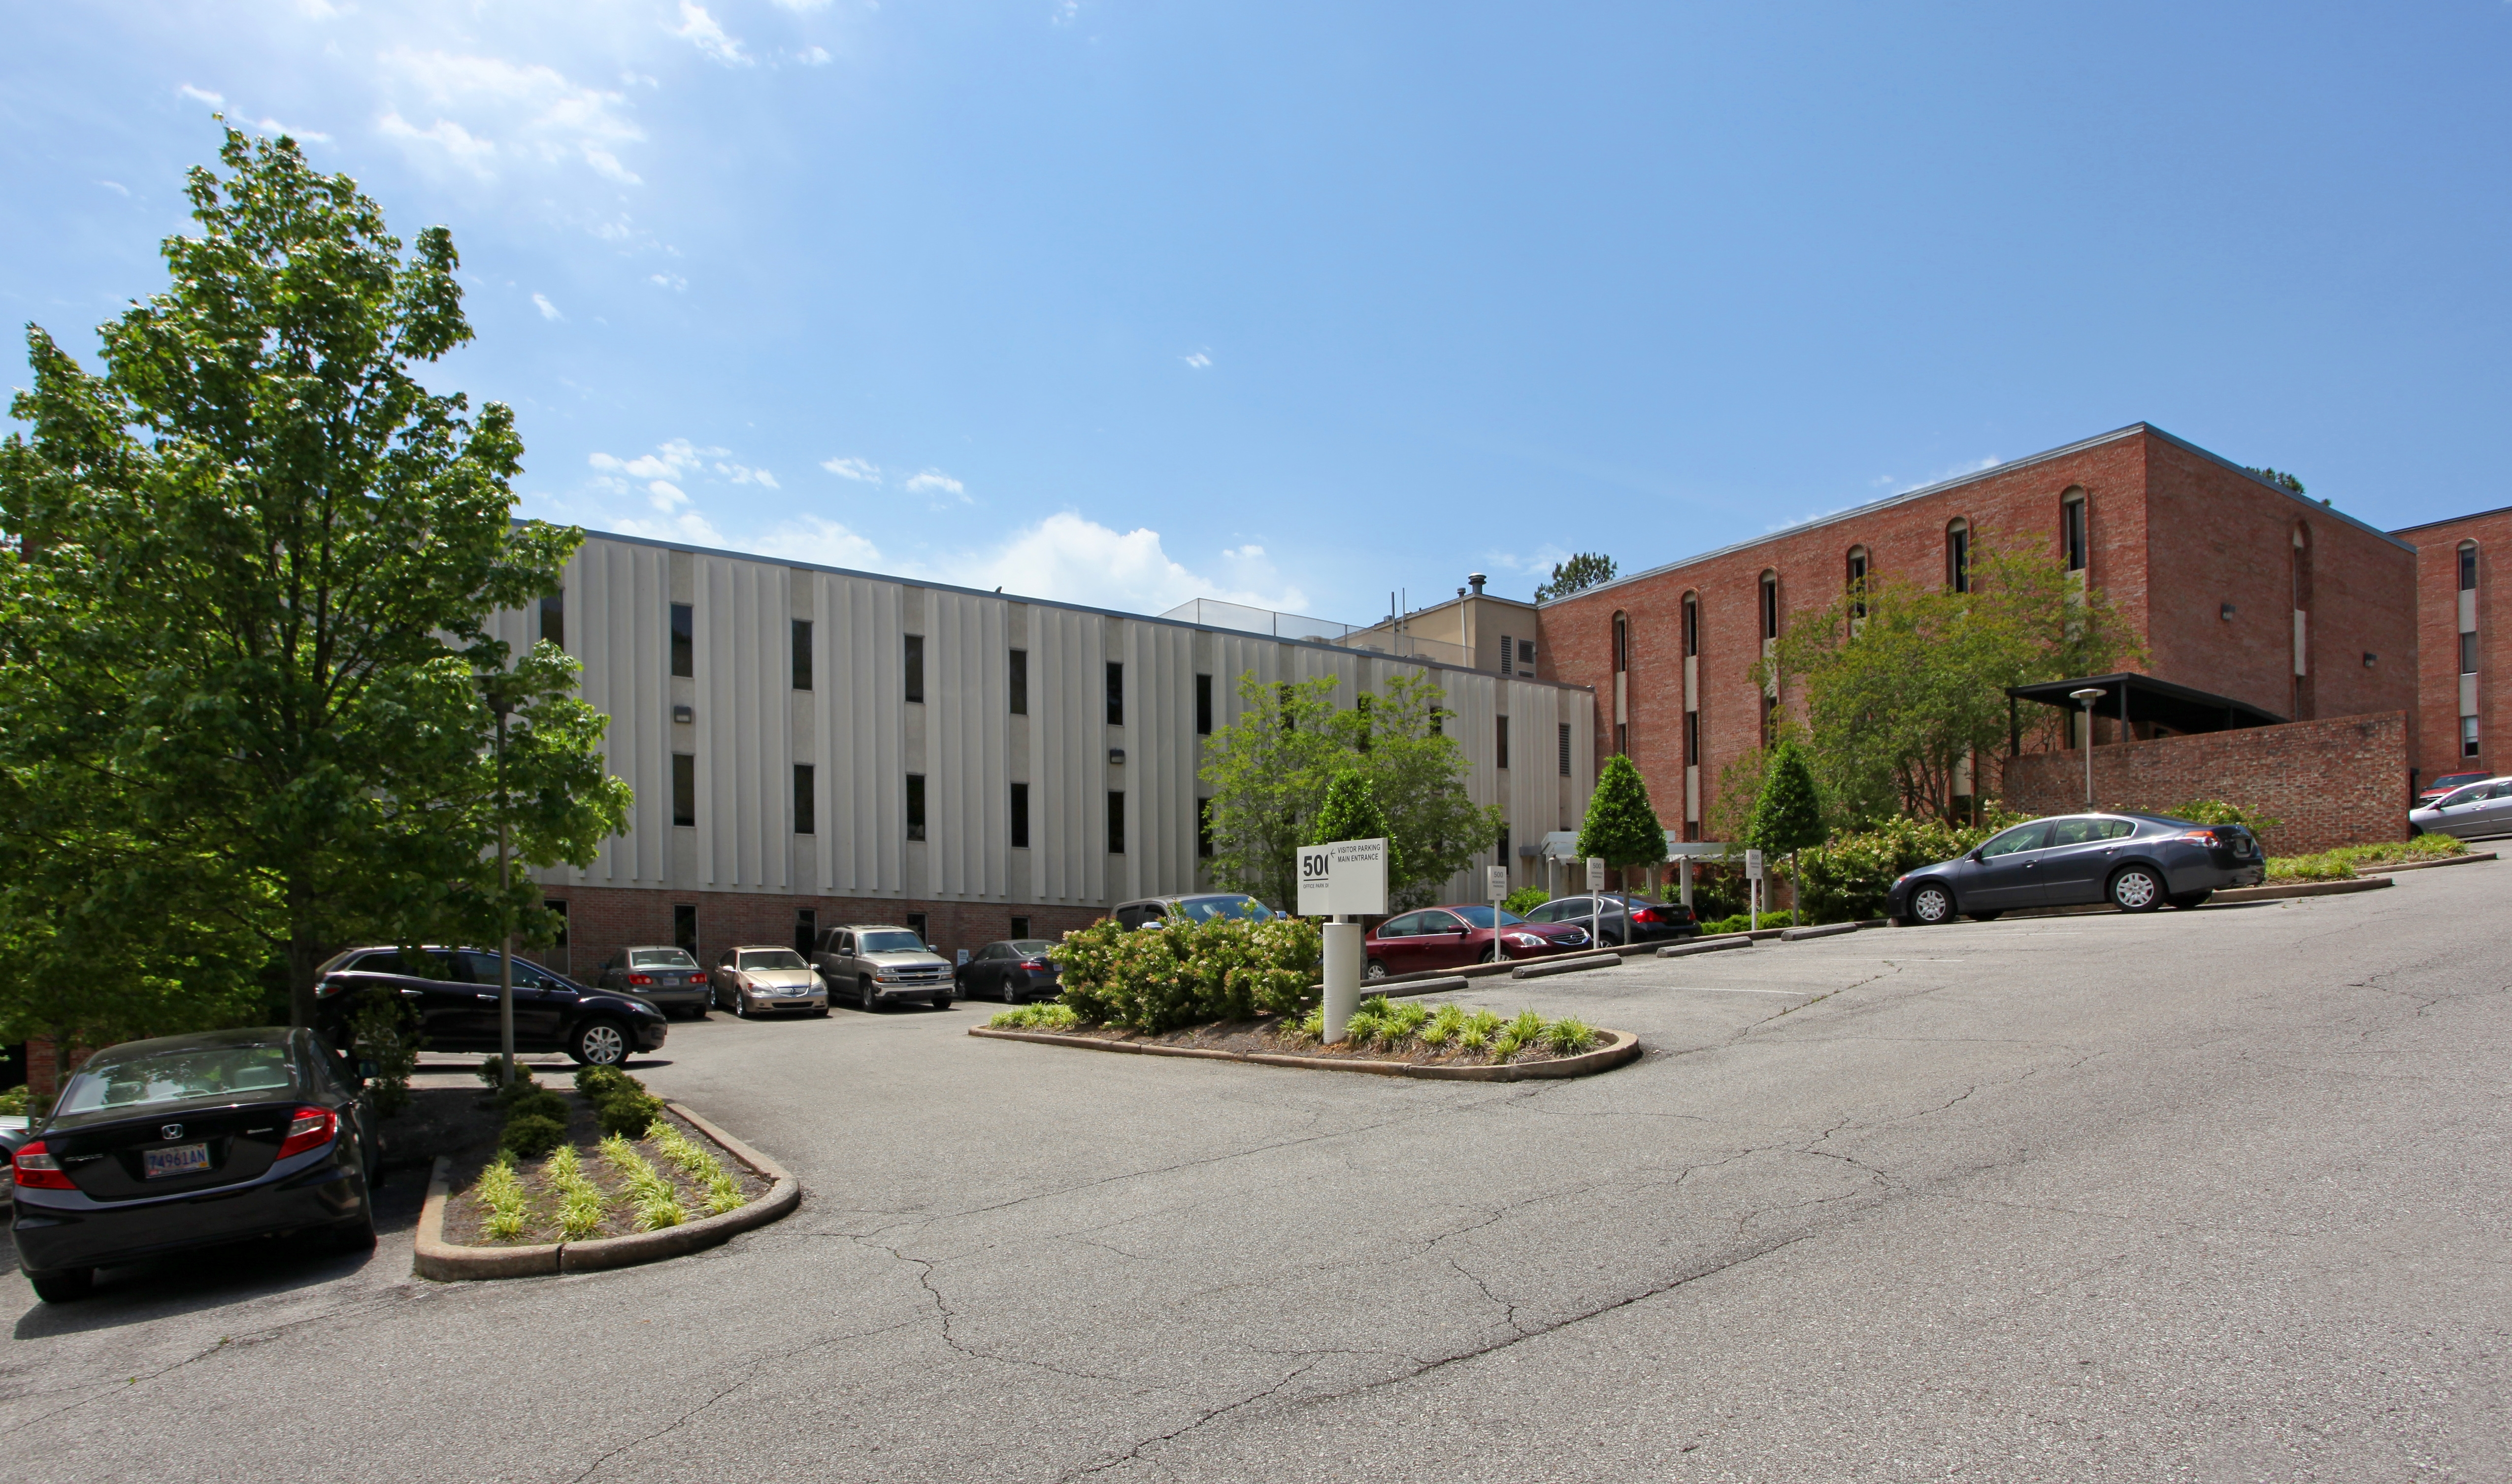 BL Harbert acquires office condo in Mountain Brook for $2.75M